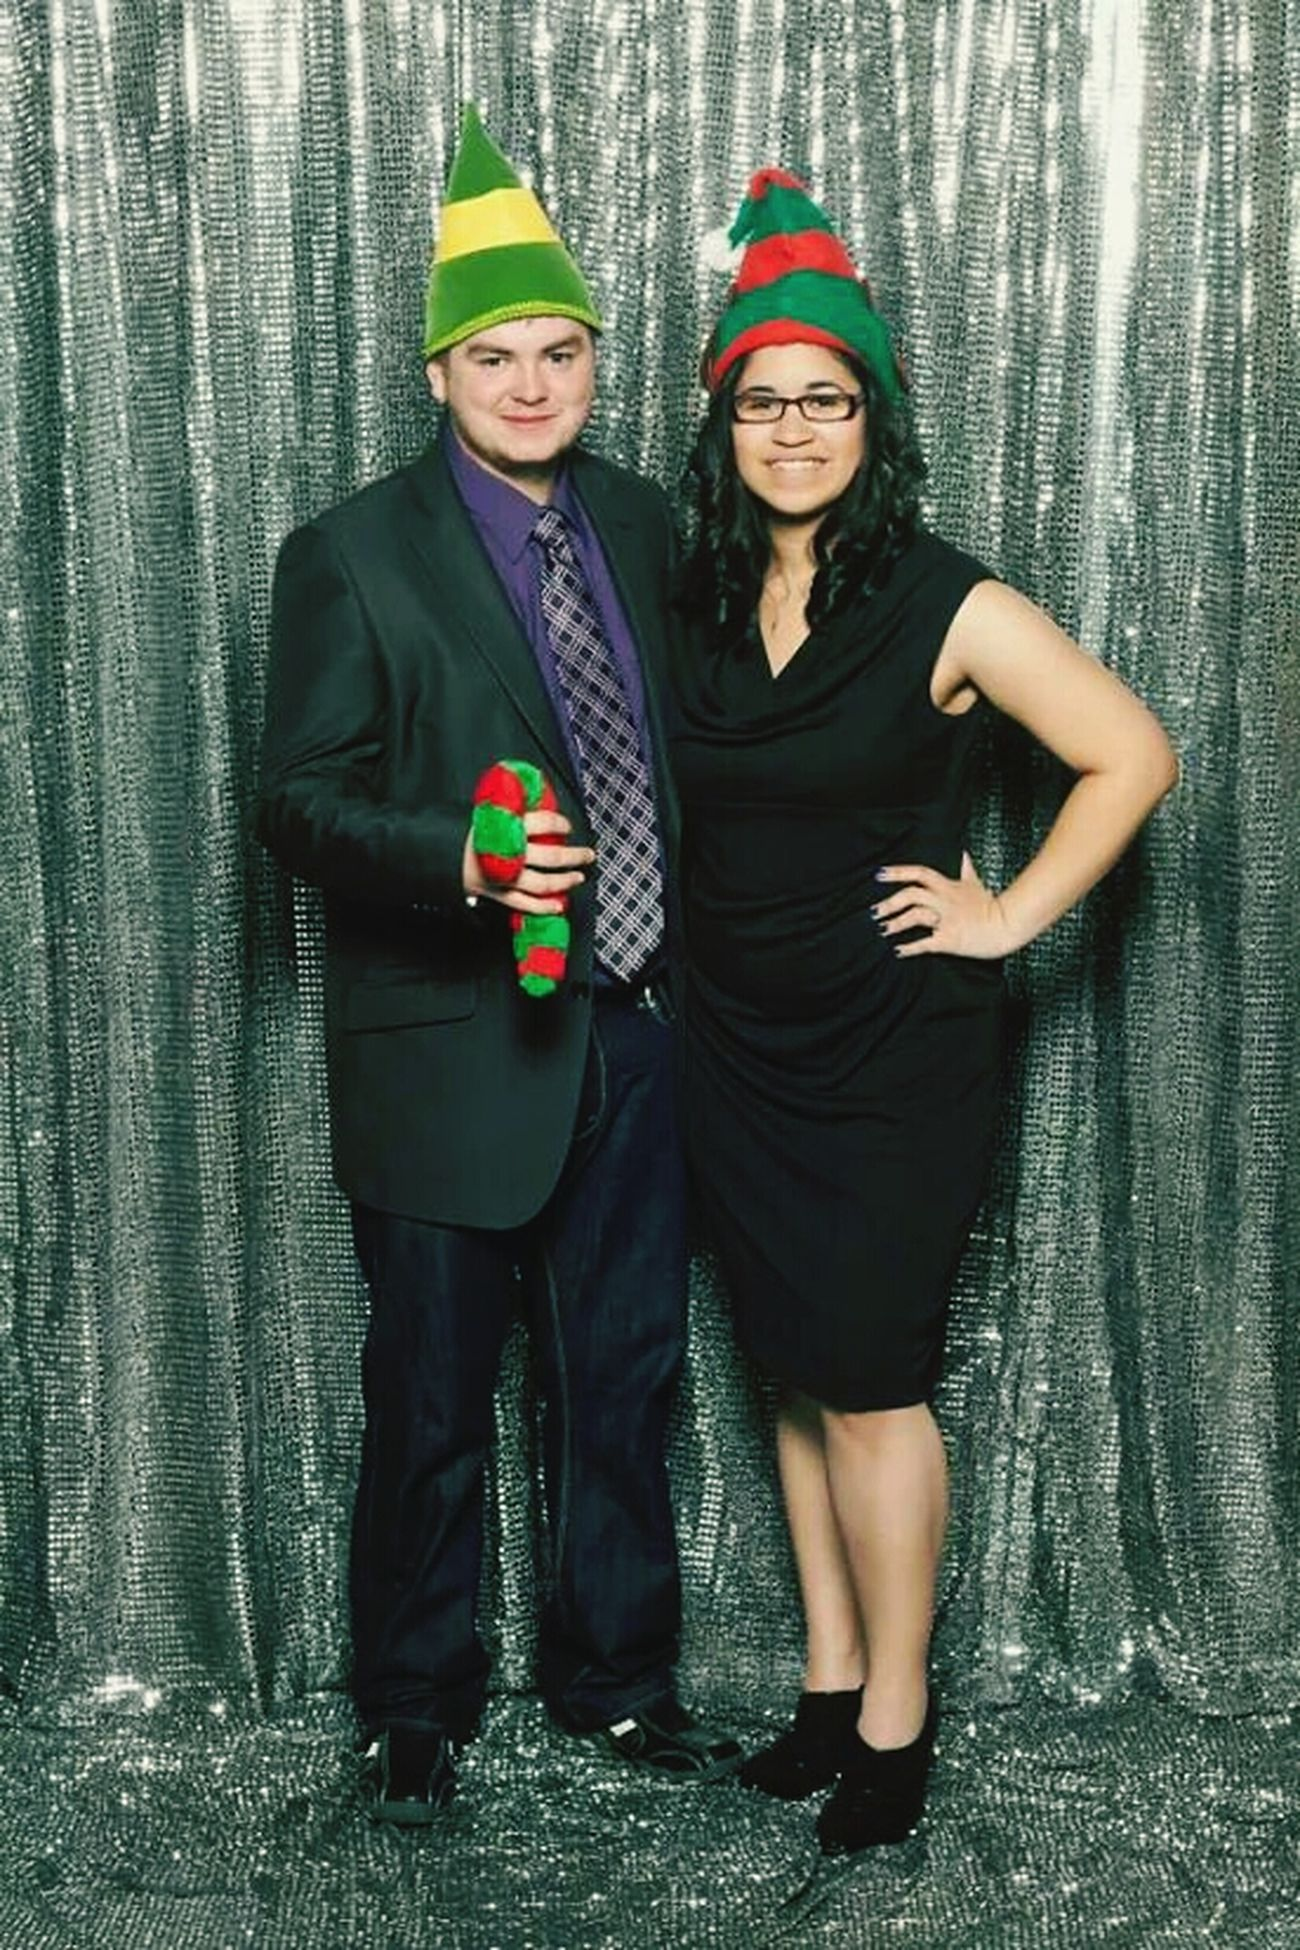 Matt & I at my Christmas party a couple weeks ago :) Elf